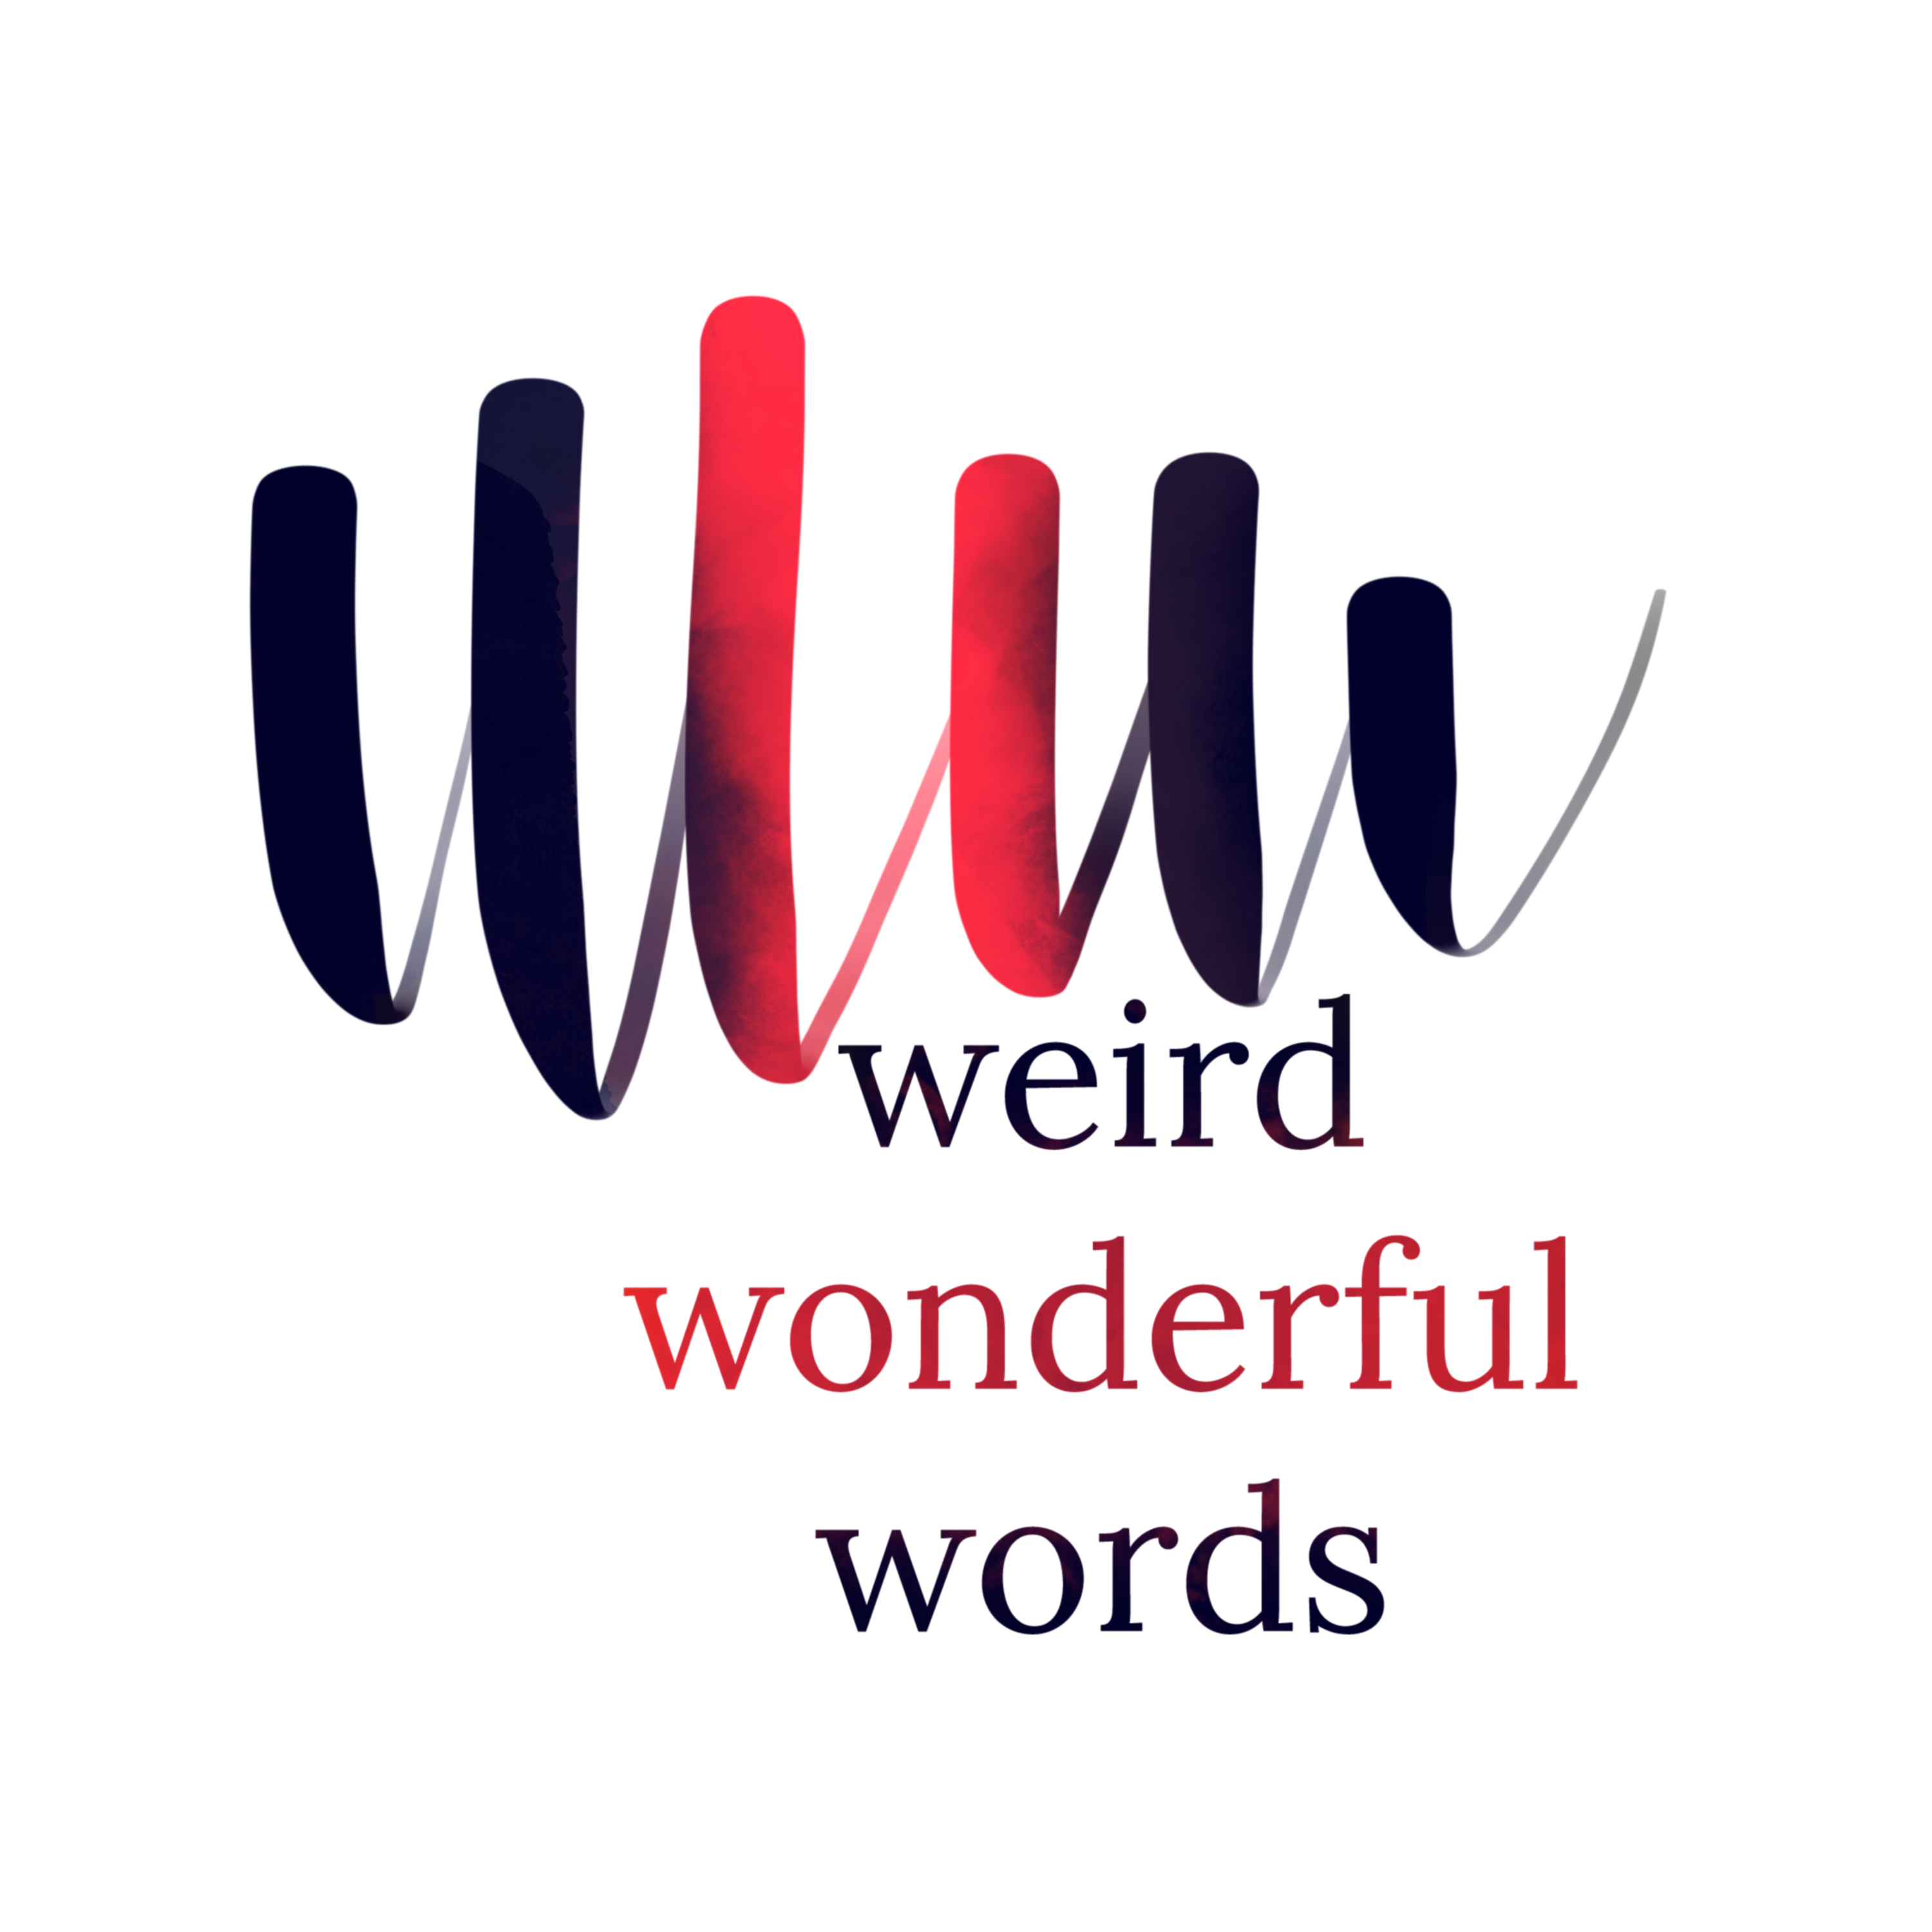 weird-wonderful-words-kiwani-dolean